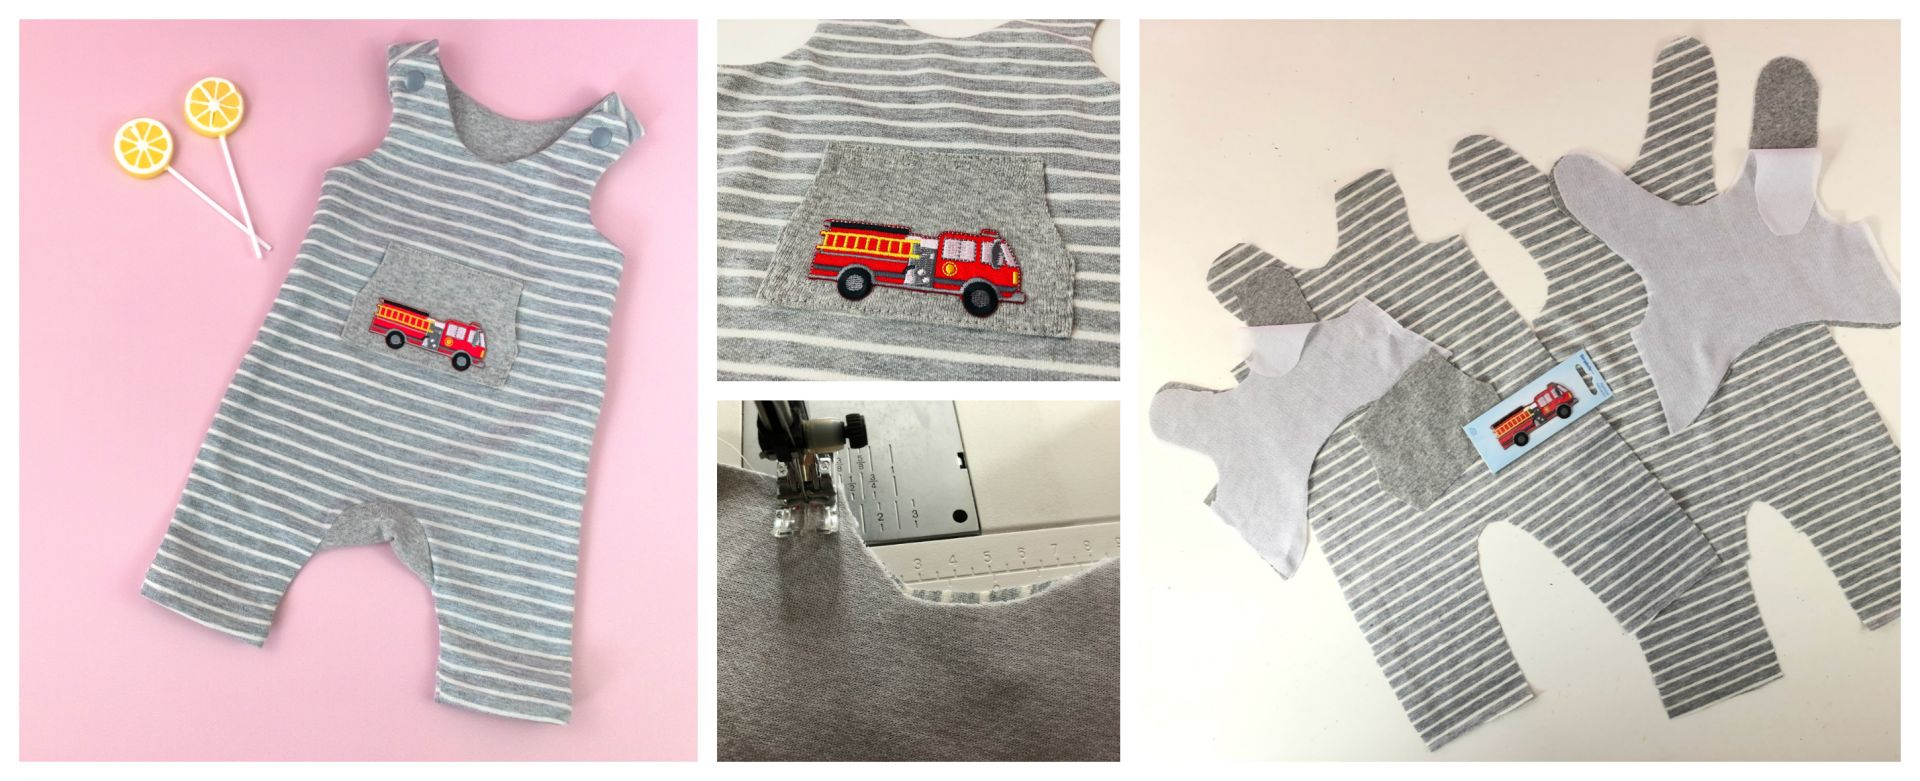 Baby Pinafore | Romper | Dungies. Beginner PDF Sewing Pattern.<span>Grey stripe cotton knit fabric baby romper. Firetruck applique. Frocks and Frolics pdf sewing pattern.</span>